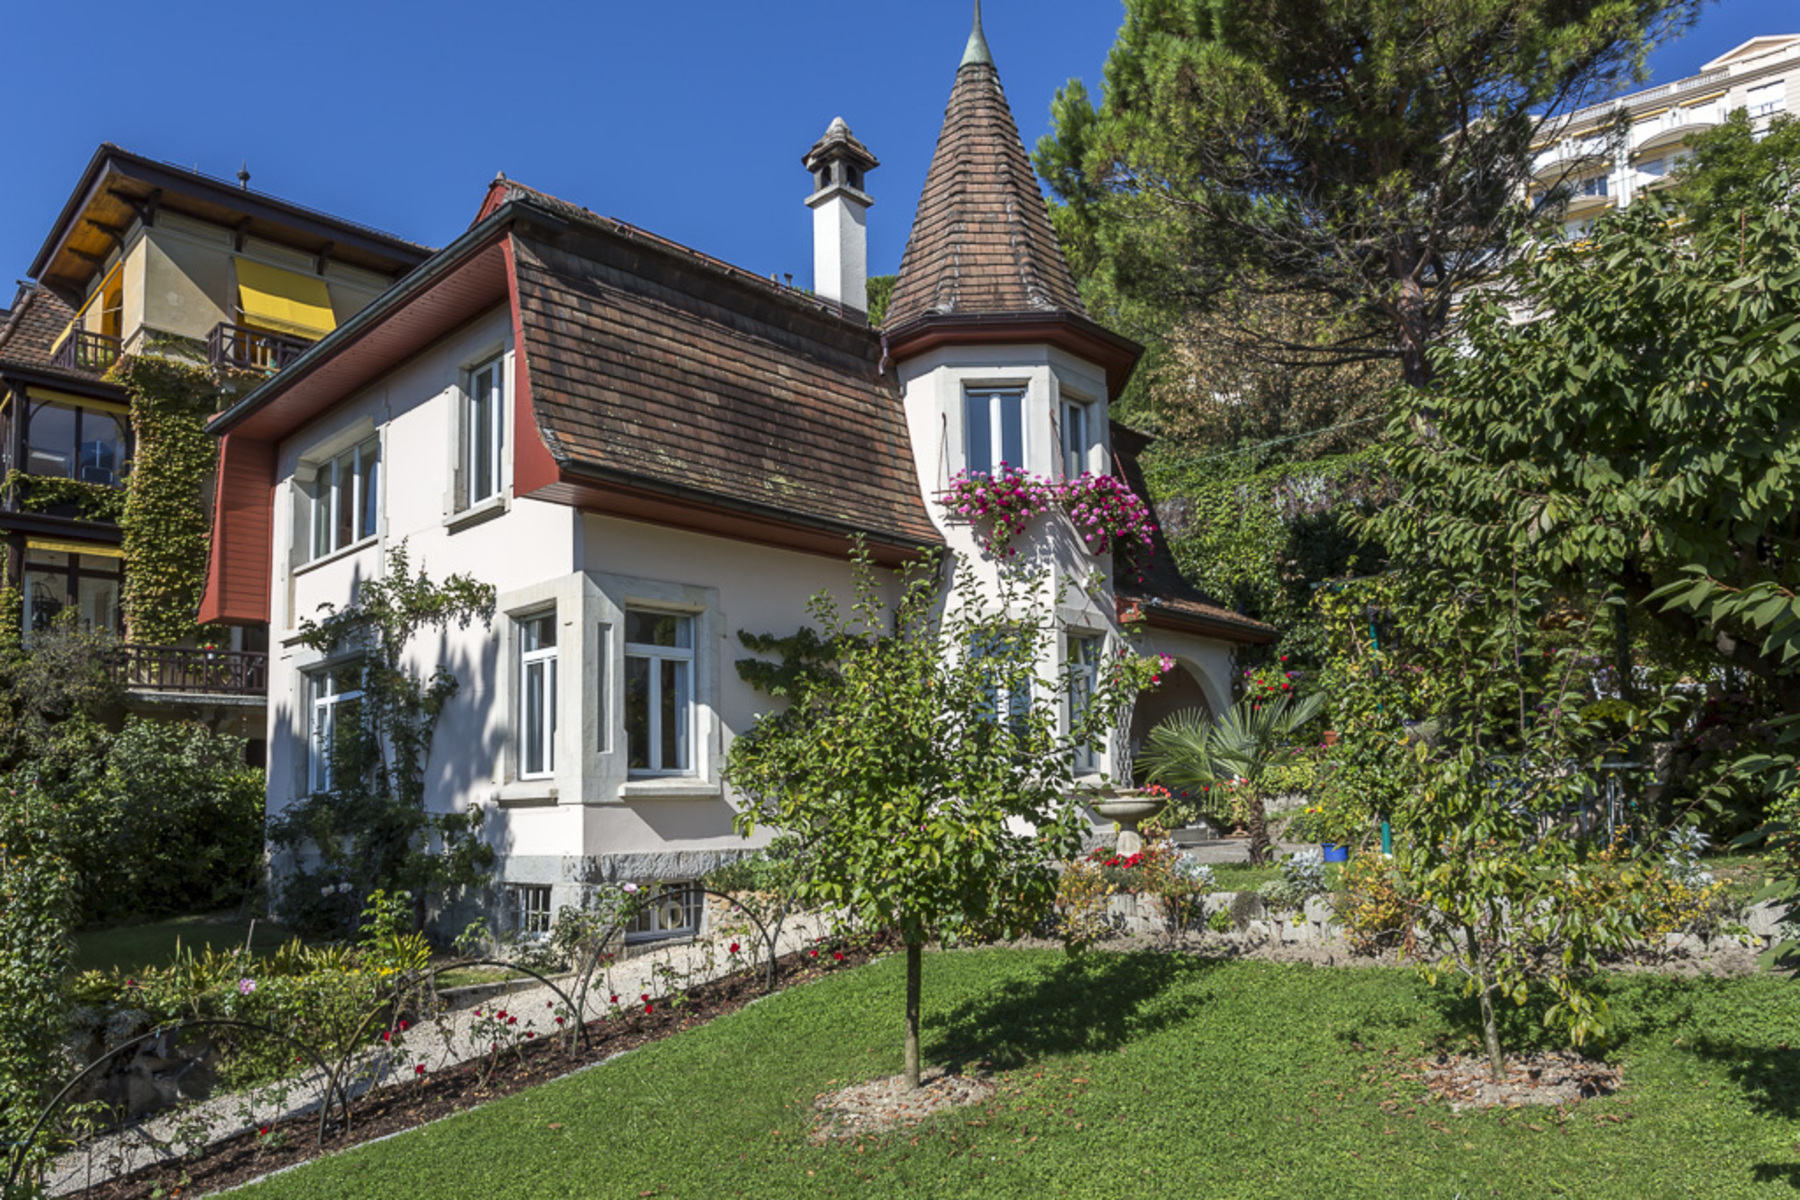 Single Family Home for Sale at Sumptuous mansion in the heart of Montreux Montreux, Vaud 1820 Switzerland